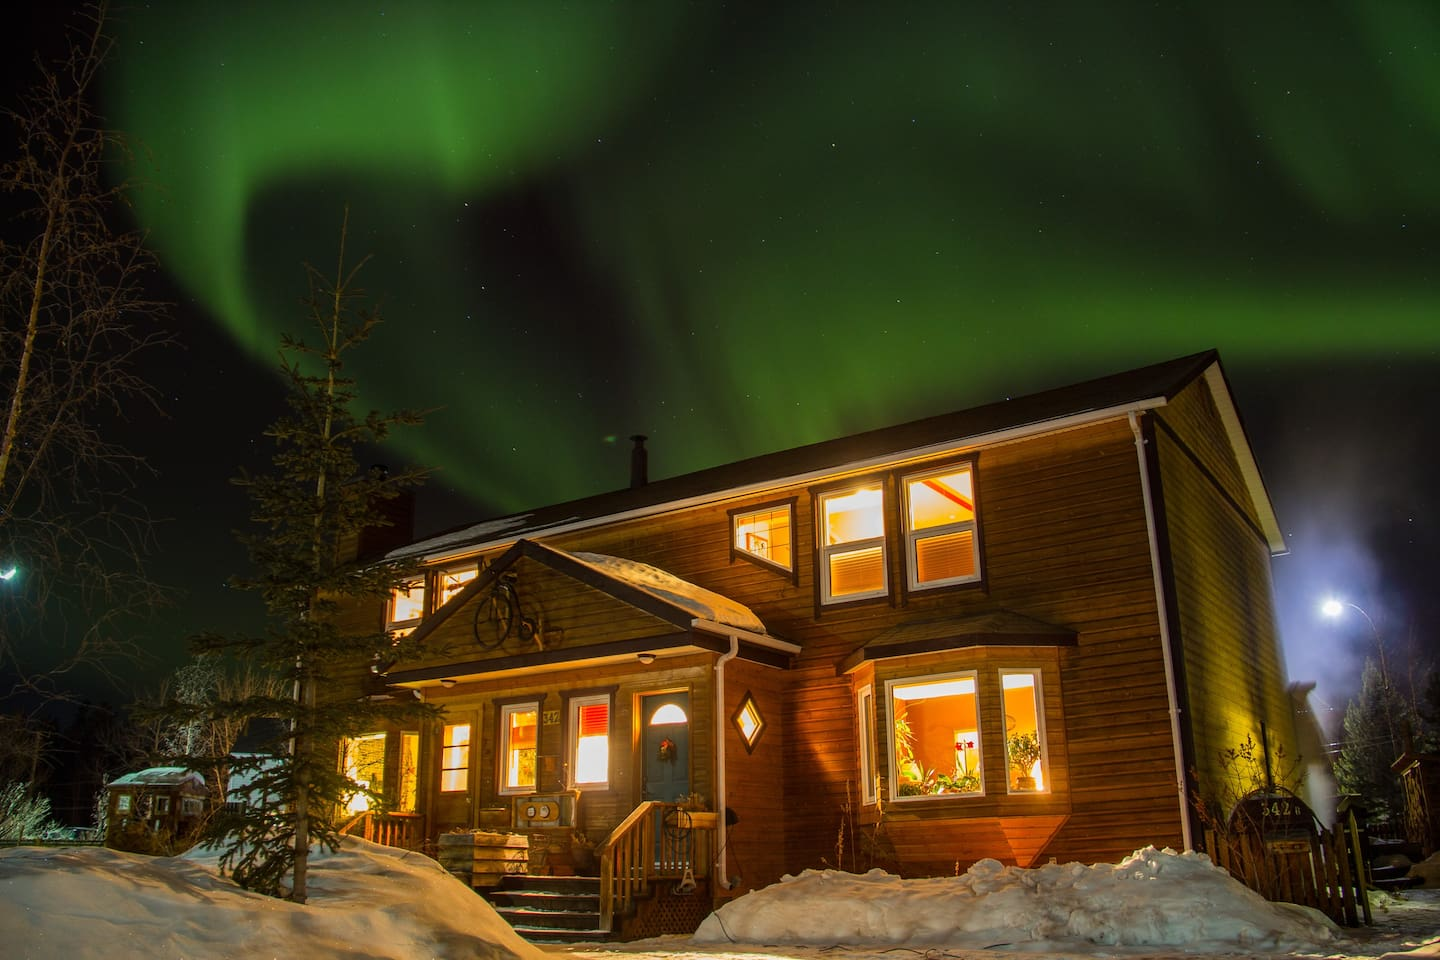 Northern lights, Aurora Borealis, from our driveway.